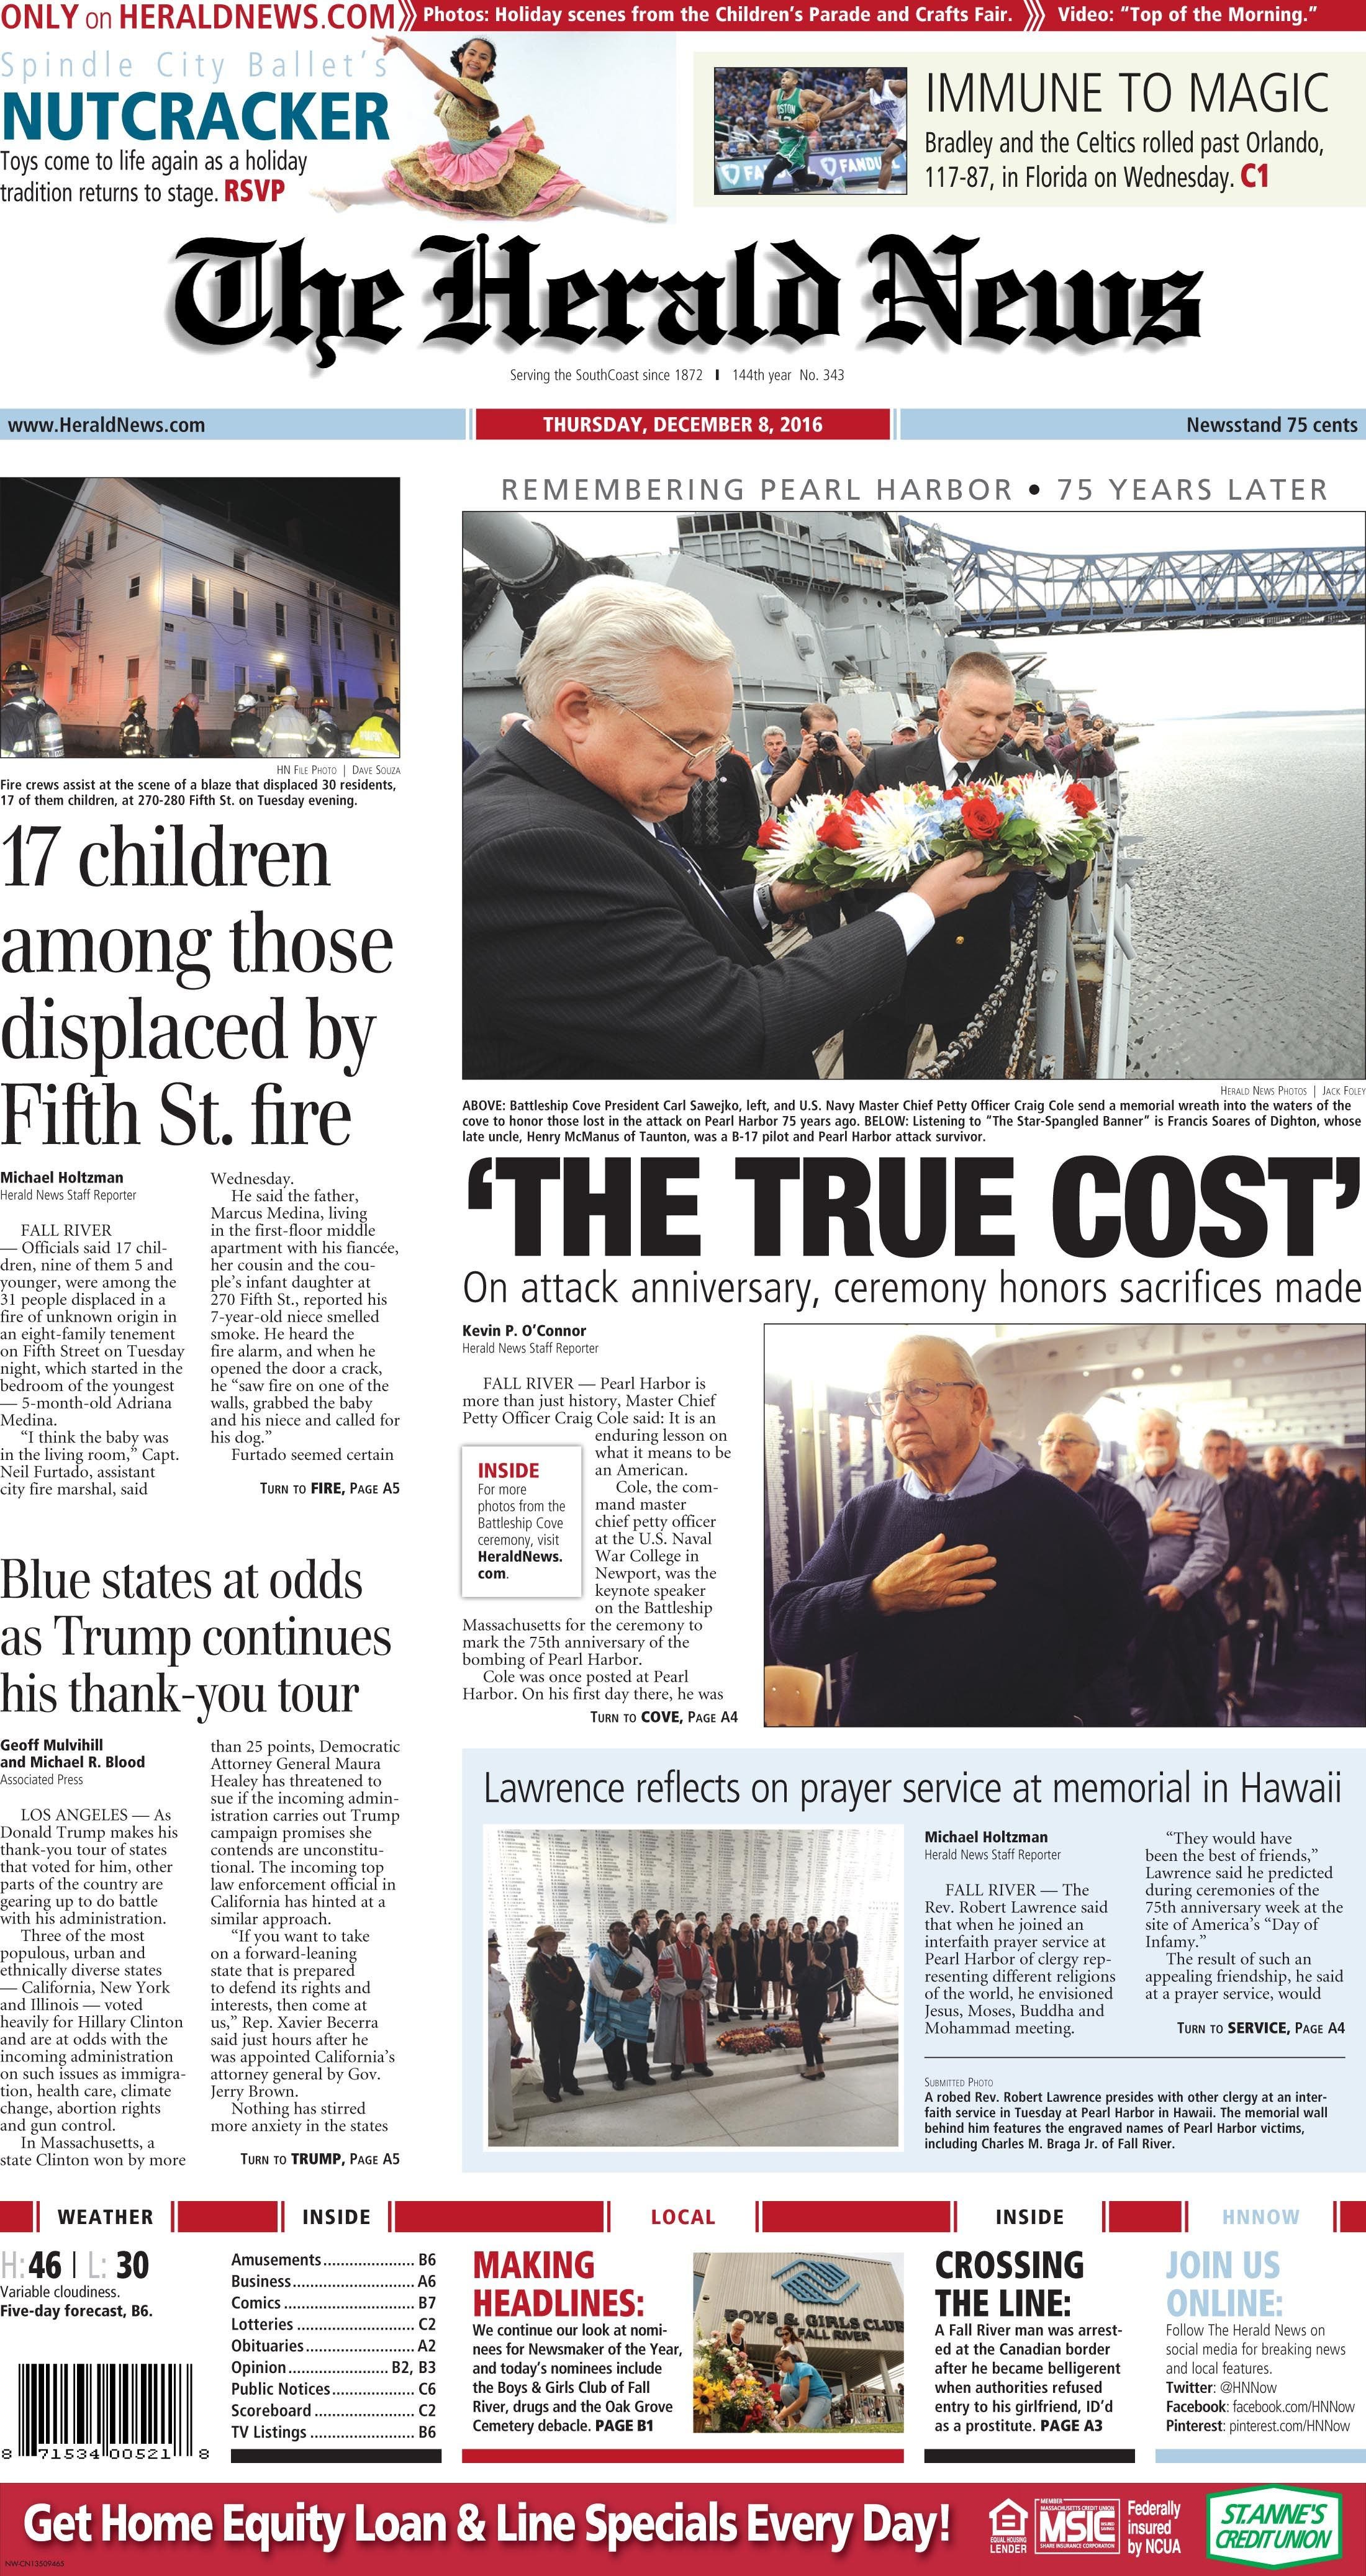 The front page of The Herald News for Thursday, Dec. 8, 8